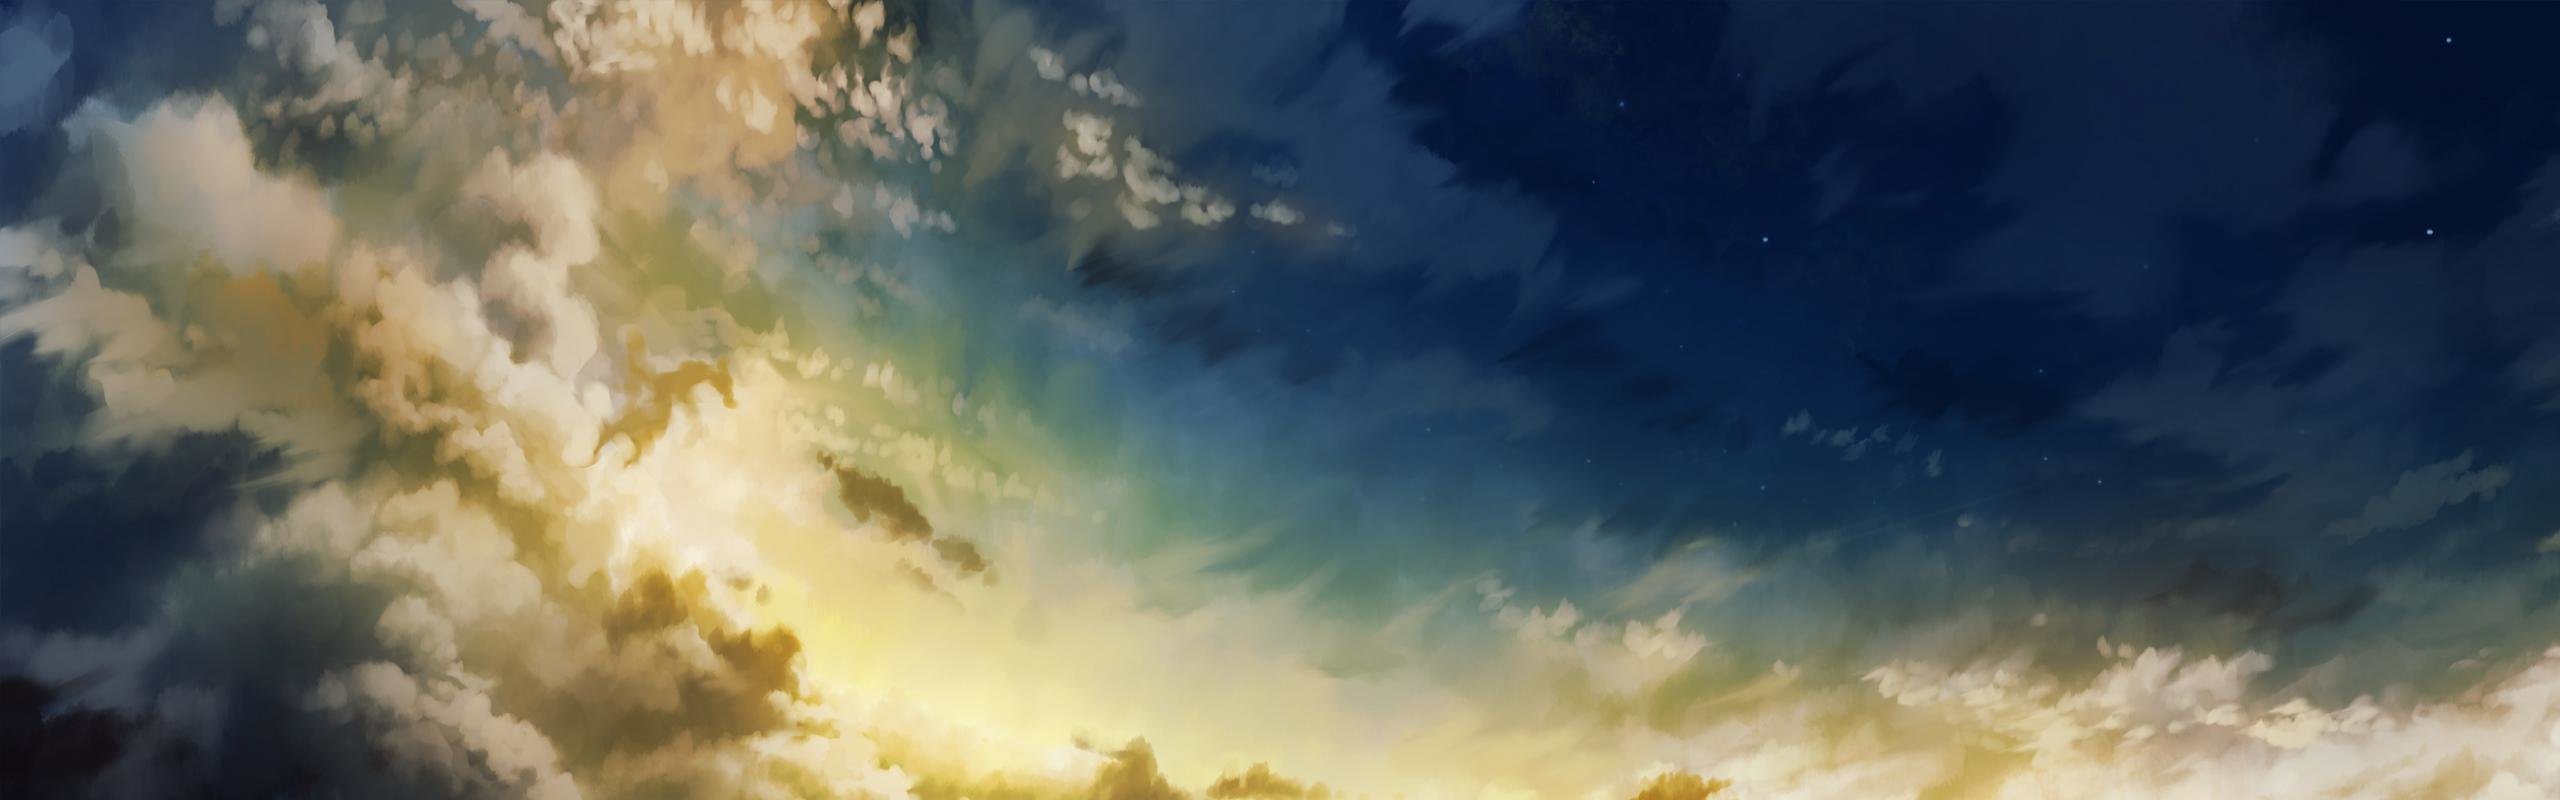 High resolution Original dual screen 2560x800 wallpaper ID:268098 for desktop